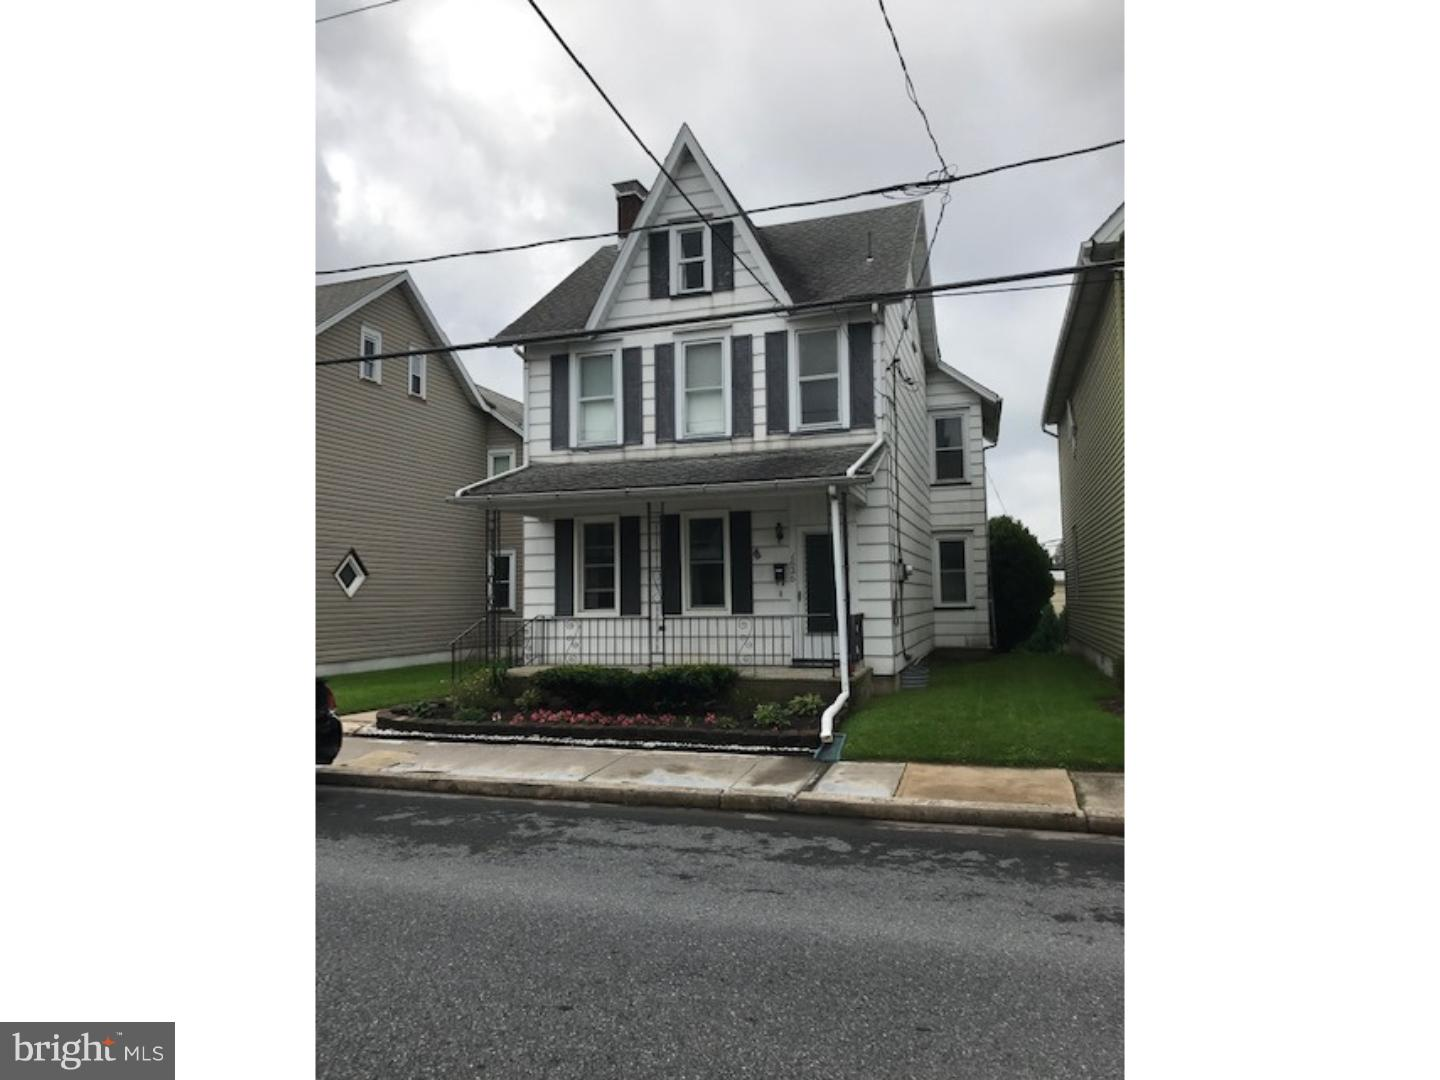 1626 WASHINGTON AVENUE, NORTHAMPTON, PA 18067